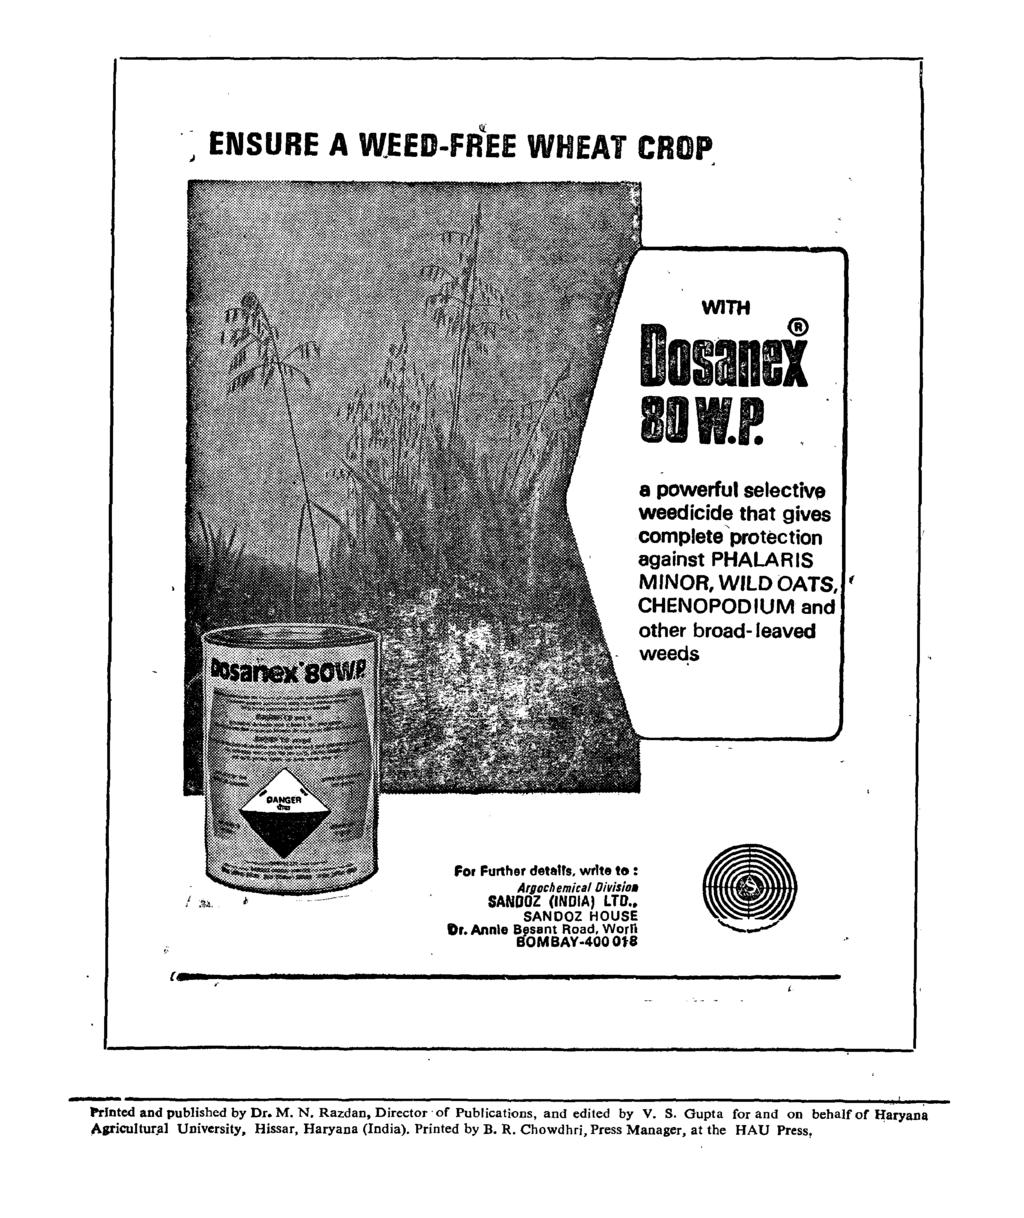 "J ENSURE A WEED-fREE WHEAT CROP Ii: WITH DosanBi BOw.P. a powerful selectiv, weedicide that gives complete 'protection against PHALARIS MINOR, WILD OATS, ( CHENOPODIUM and other broad- leaved weeds For Further deta""!"